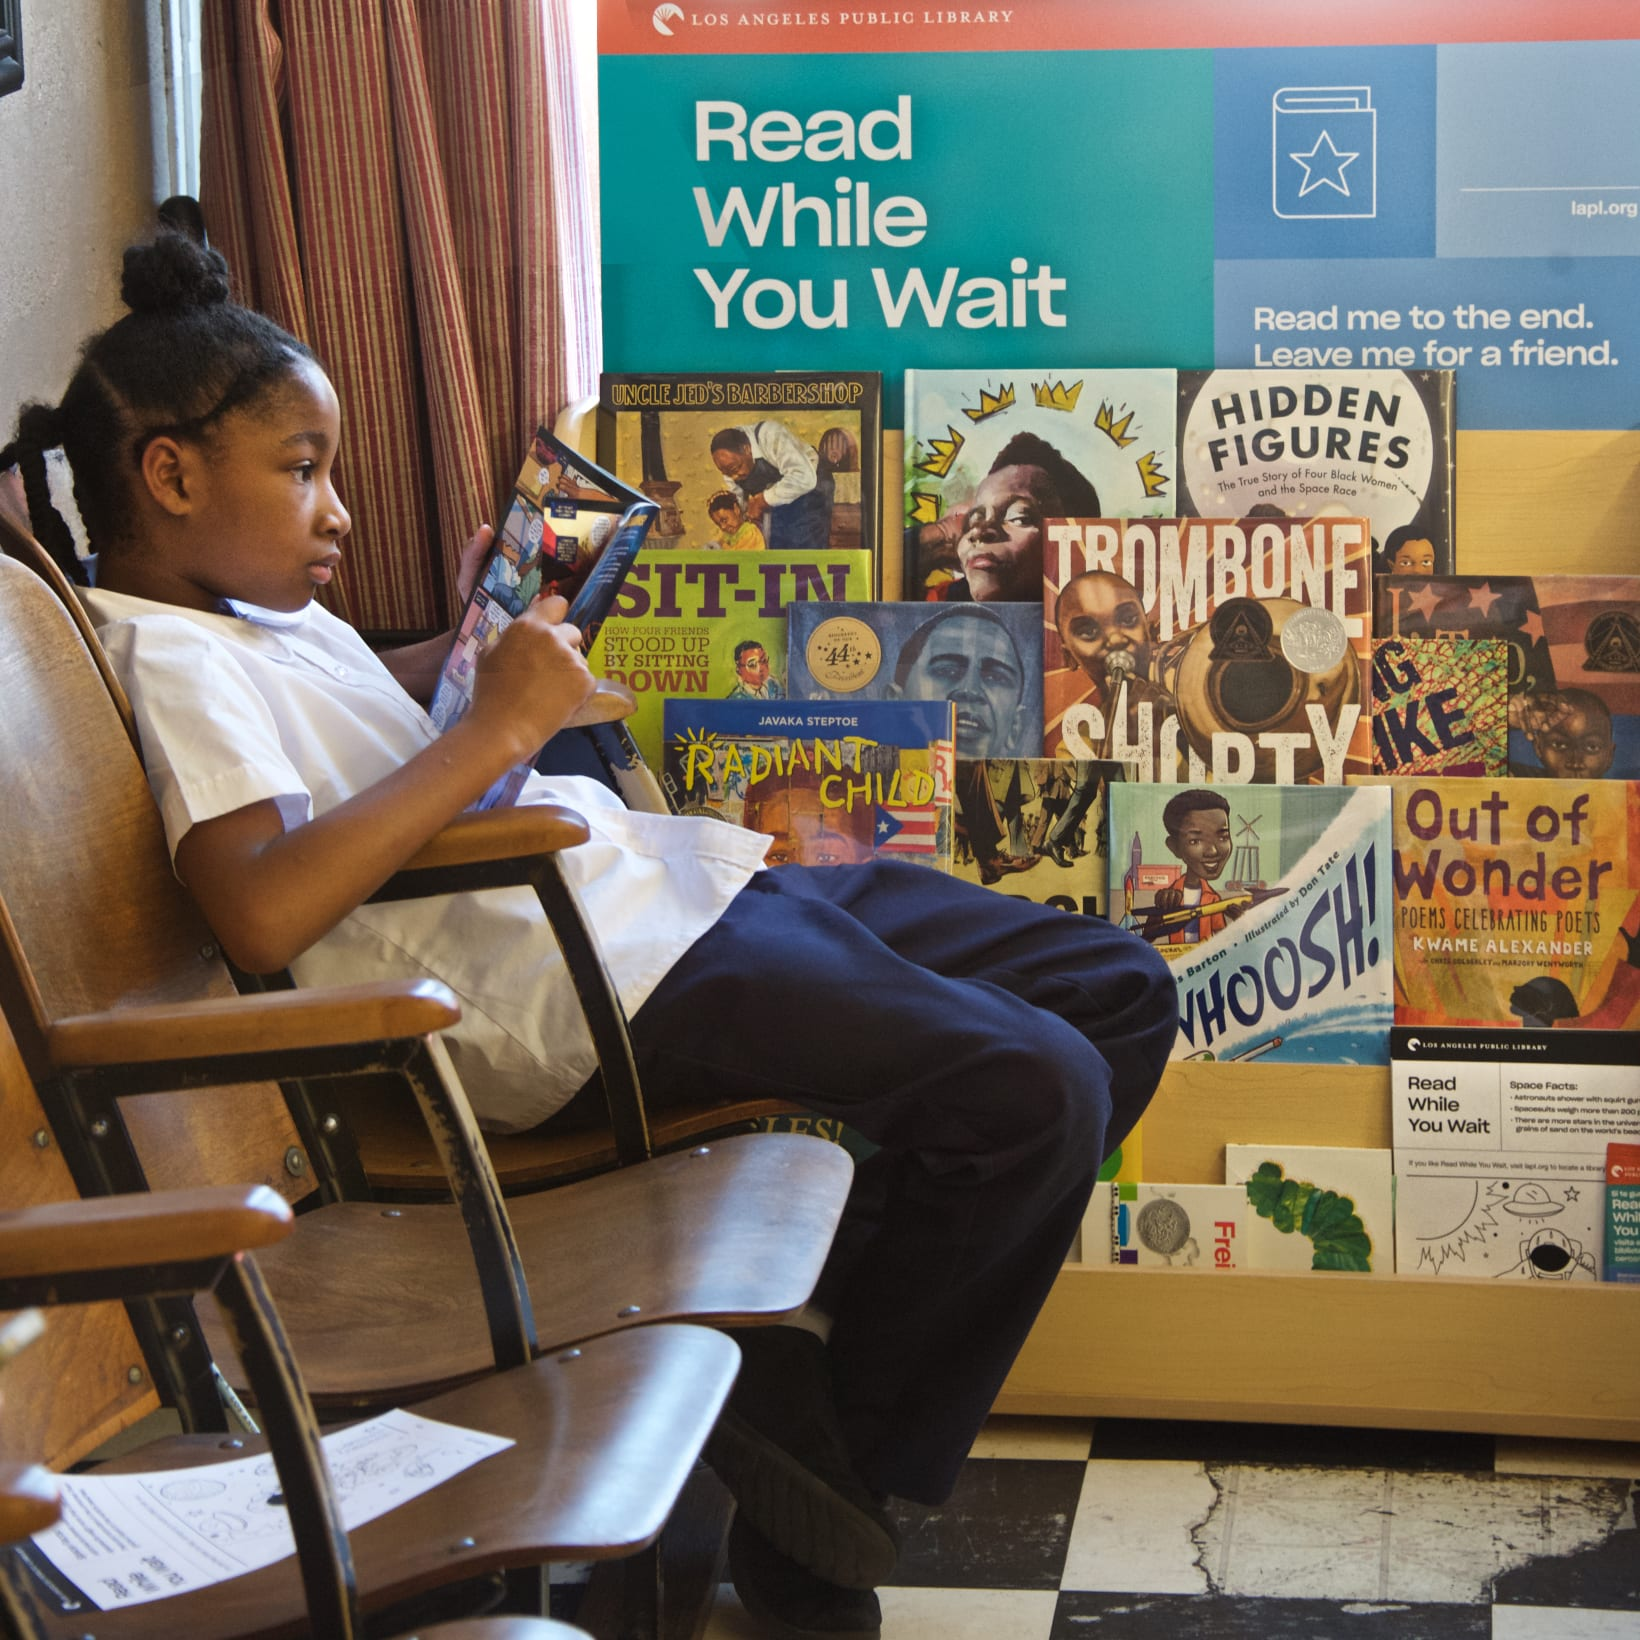 lapl's read while you wait